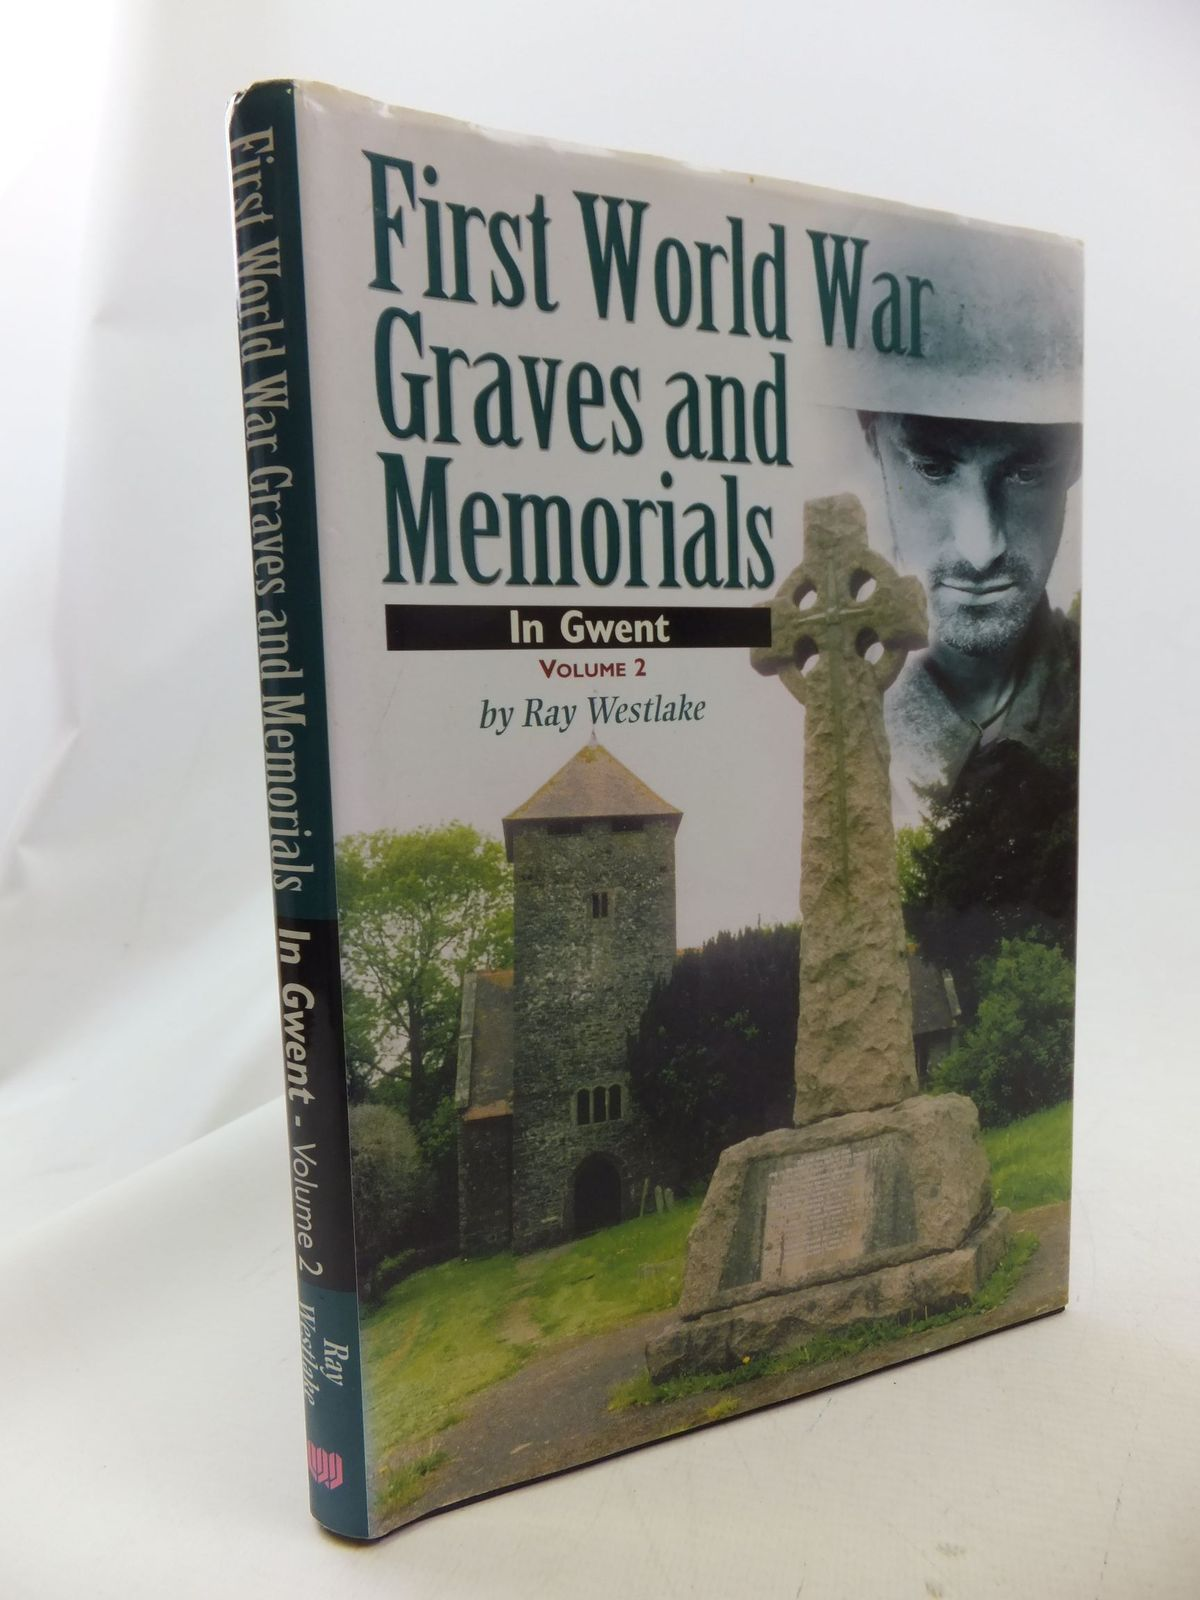 Photo of FIRST WORLD WAR GRAVES AND MEMORIALS IN GWENT VOLUME 2 written by Westlake, Ray published by Wharncliffe Books (STOCK CODE: 1710923)  for sale by Stella & Rose's Books